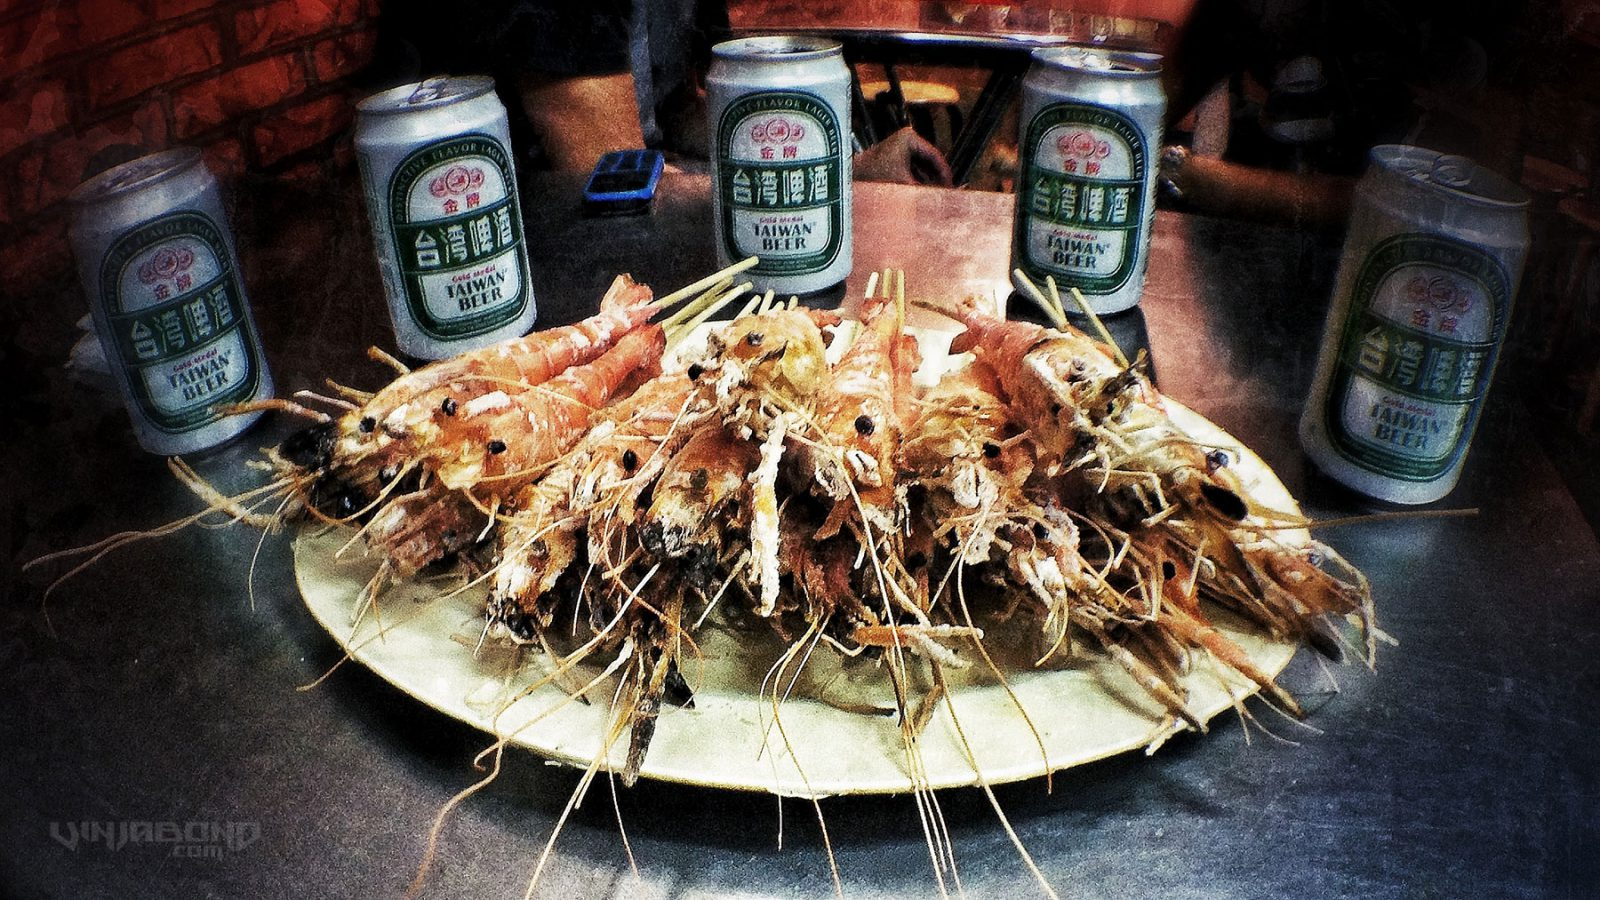 - Our Shrimp Ready to Eat w/ Taiwan Beer -